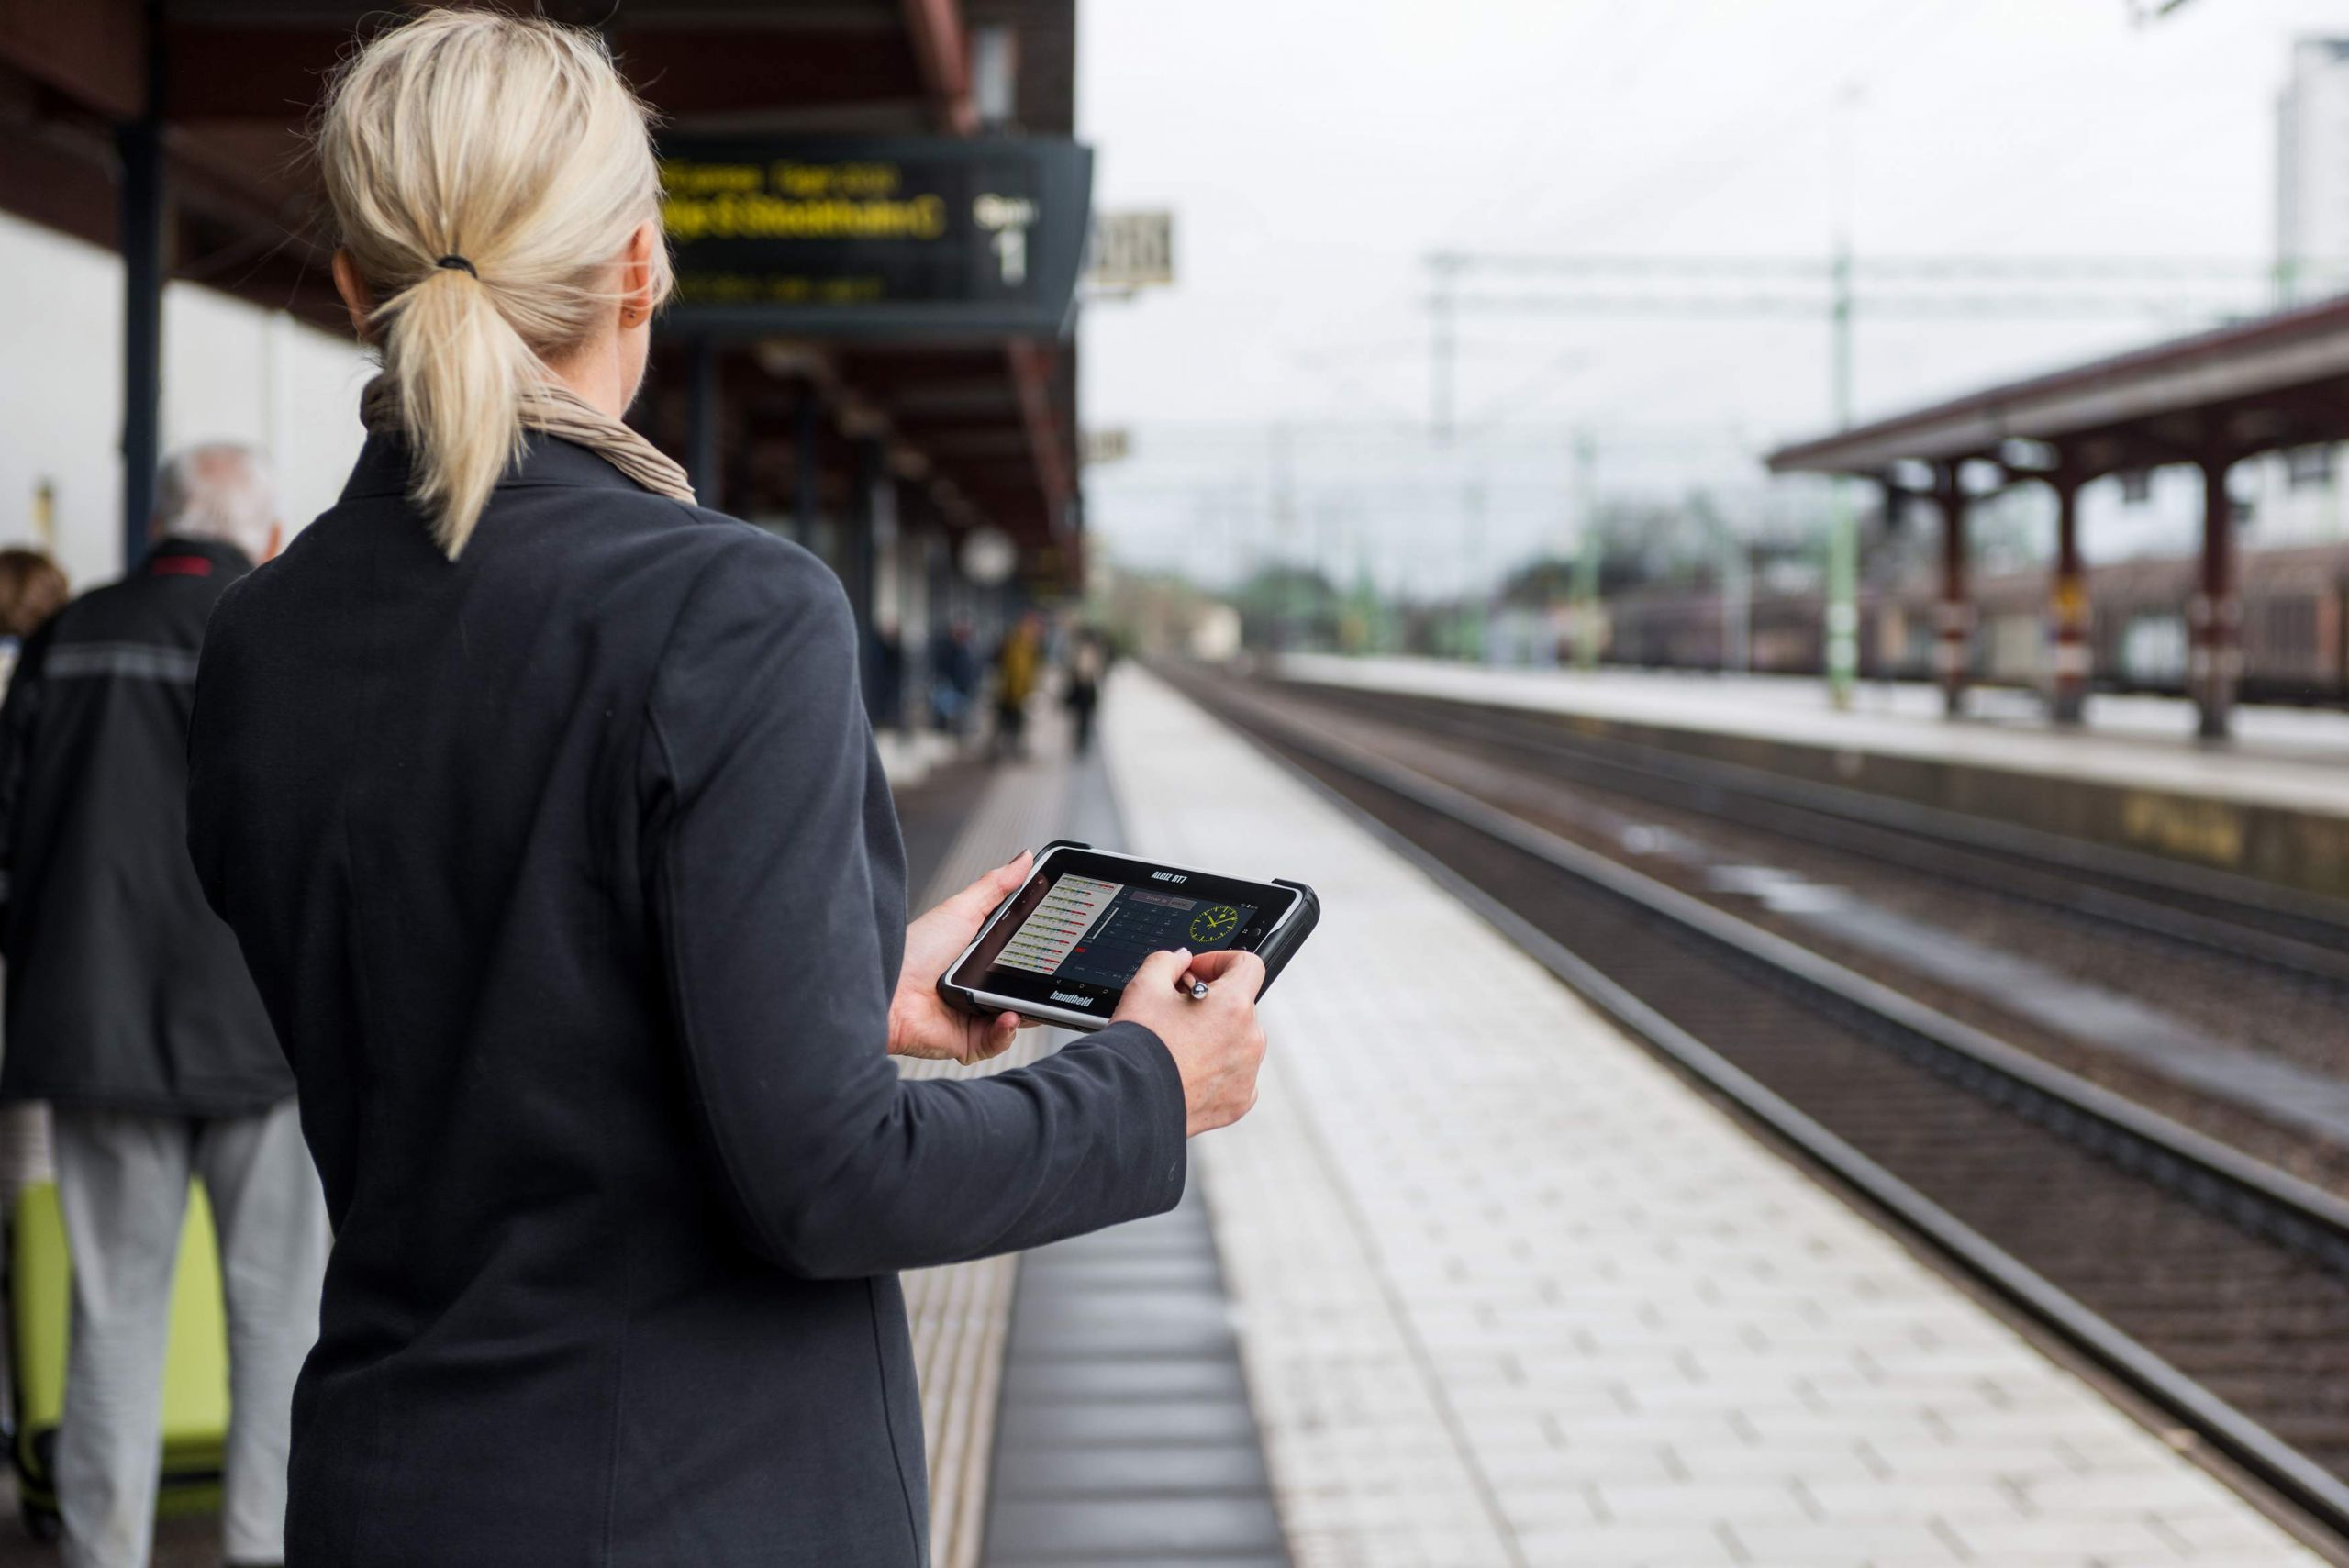 ALGIZ RT7 eTicket Android fare collection trainstation